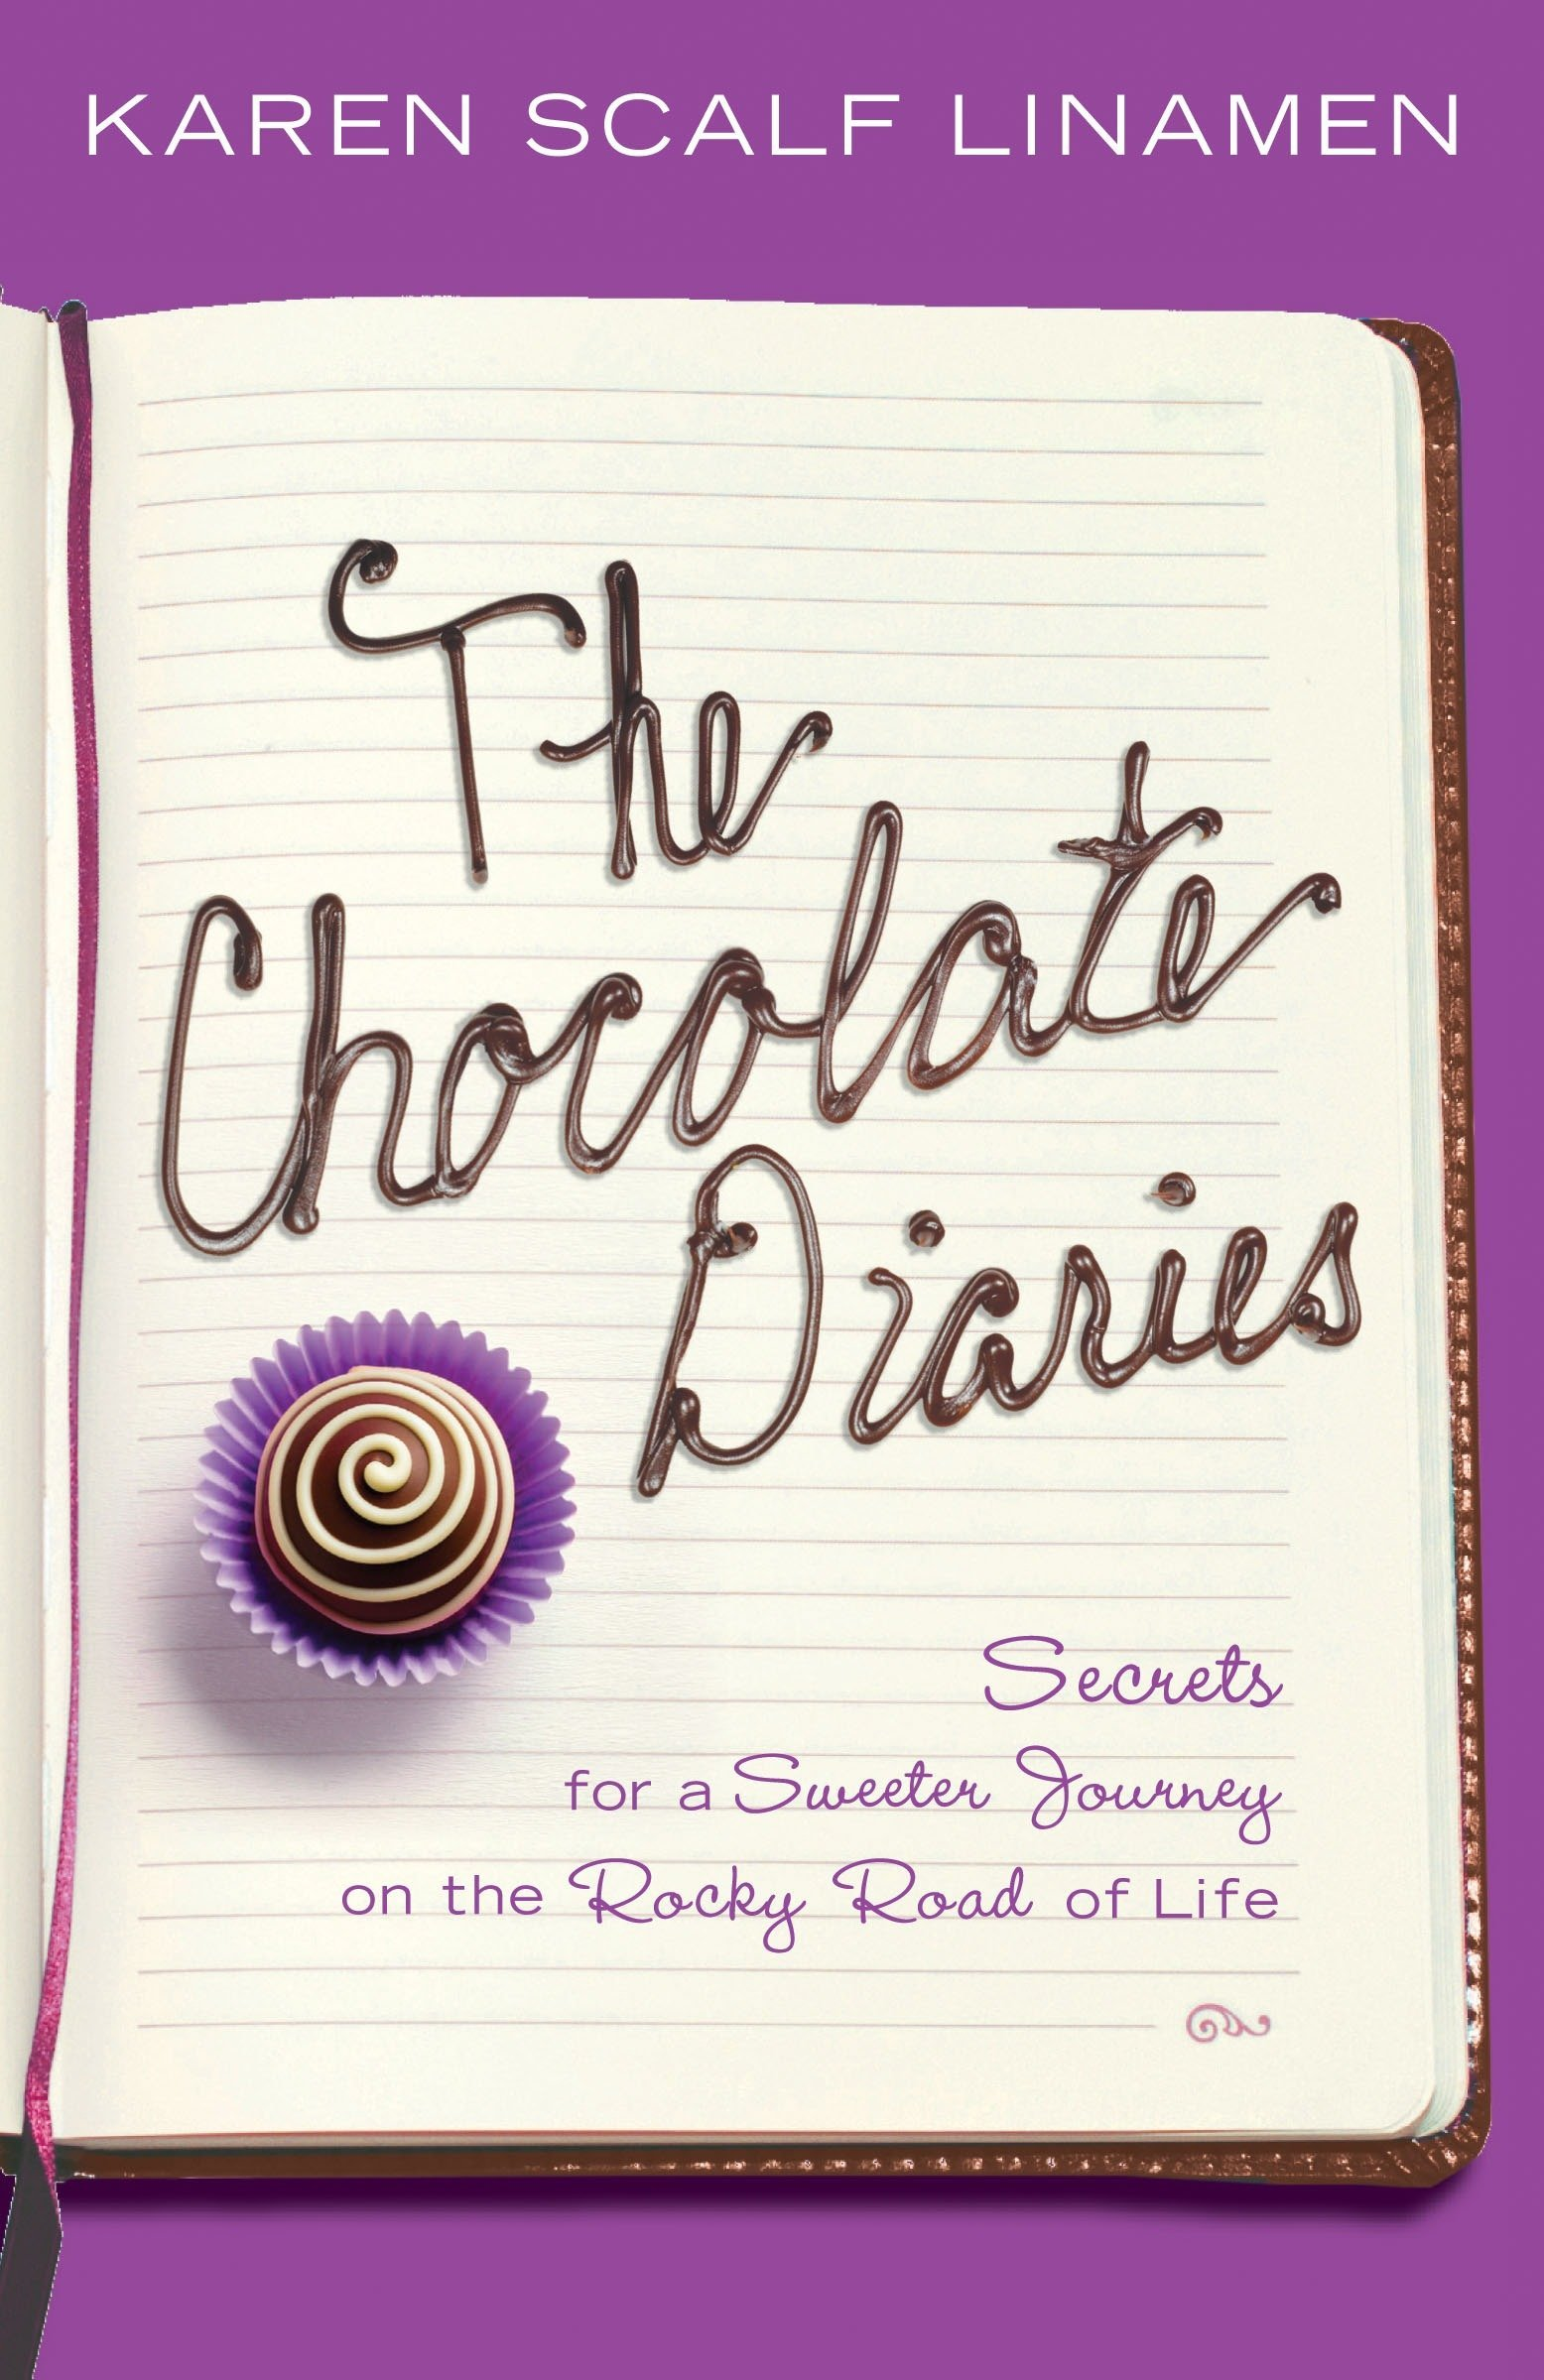 The Chocolate Diaries: Secrets for a Sweeter Journey on the Rocky Road of Life